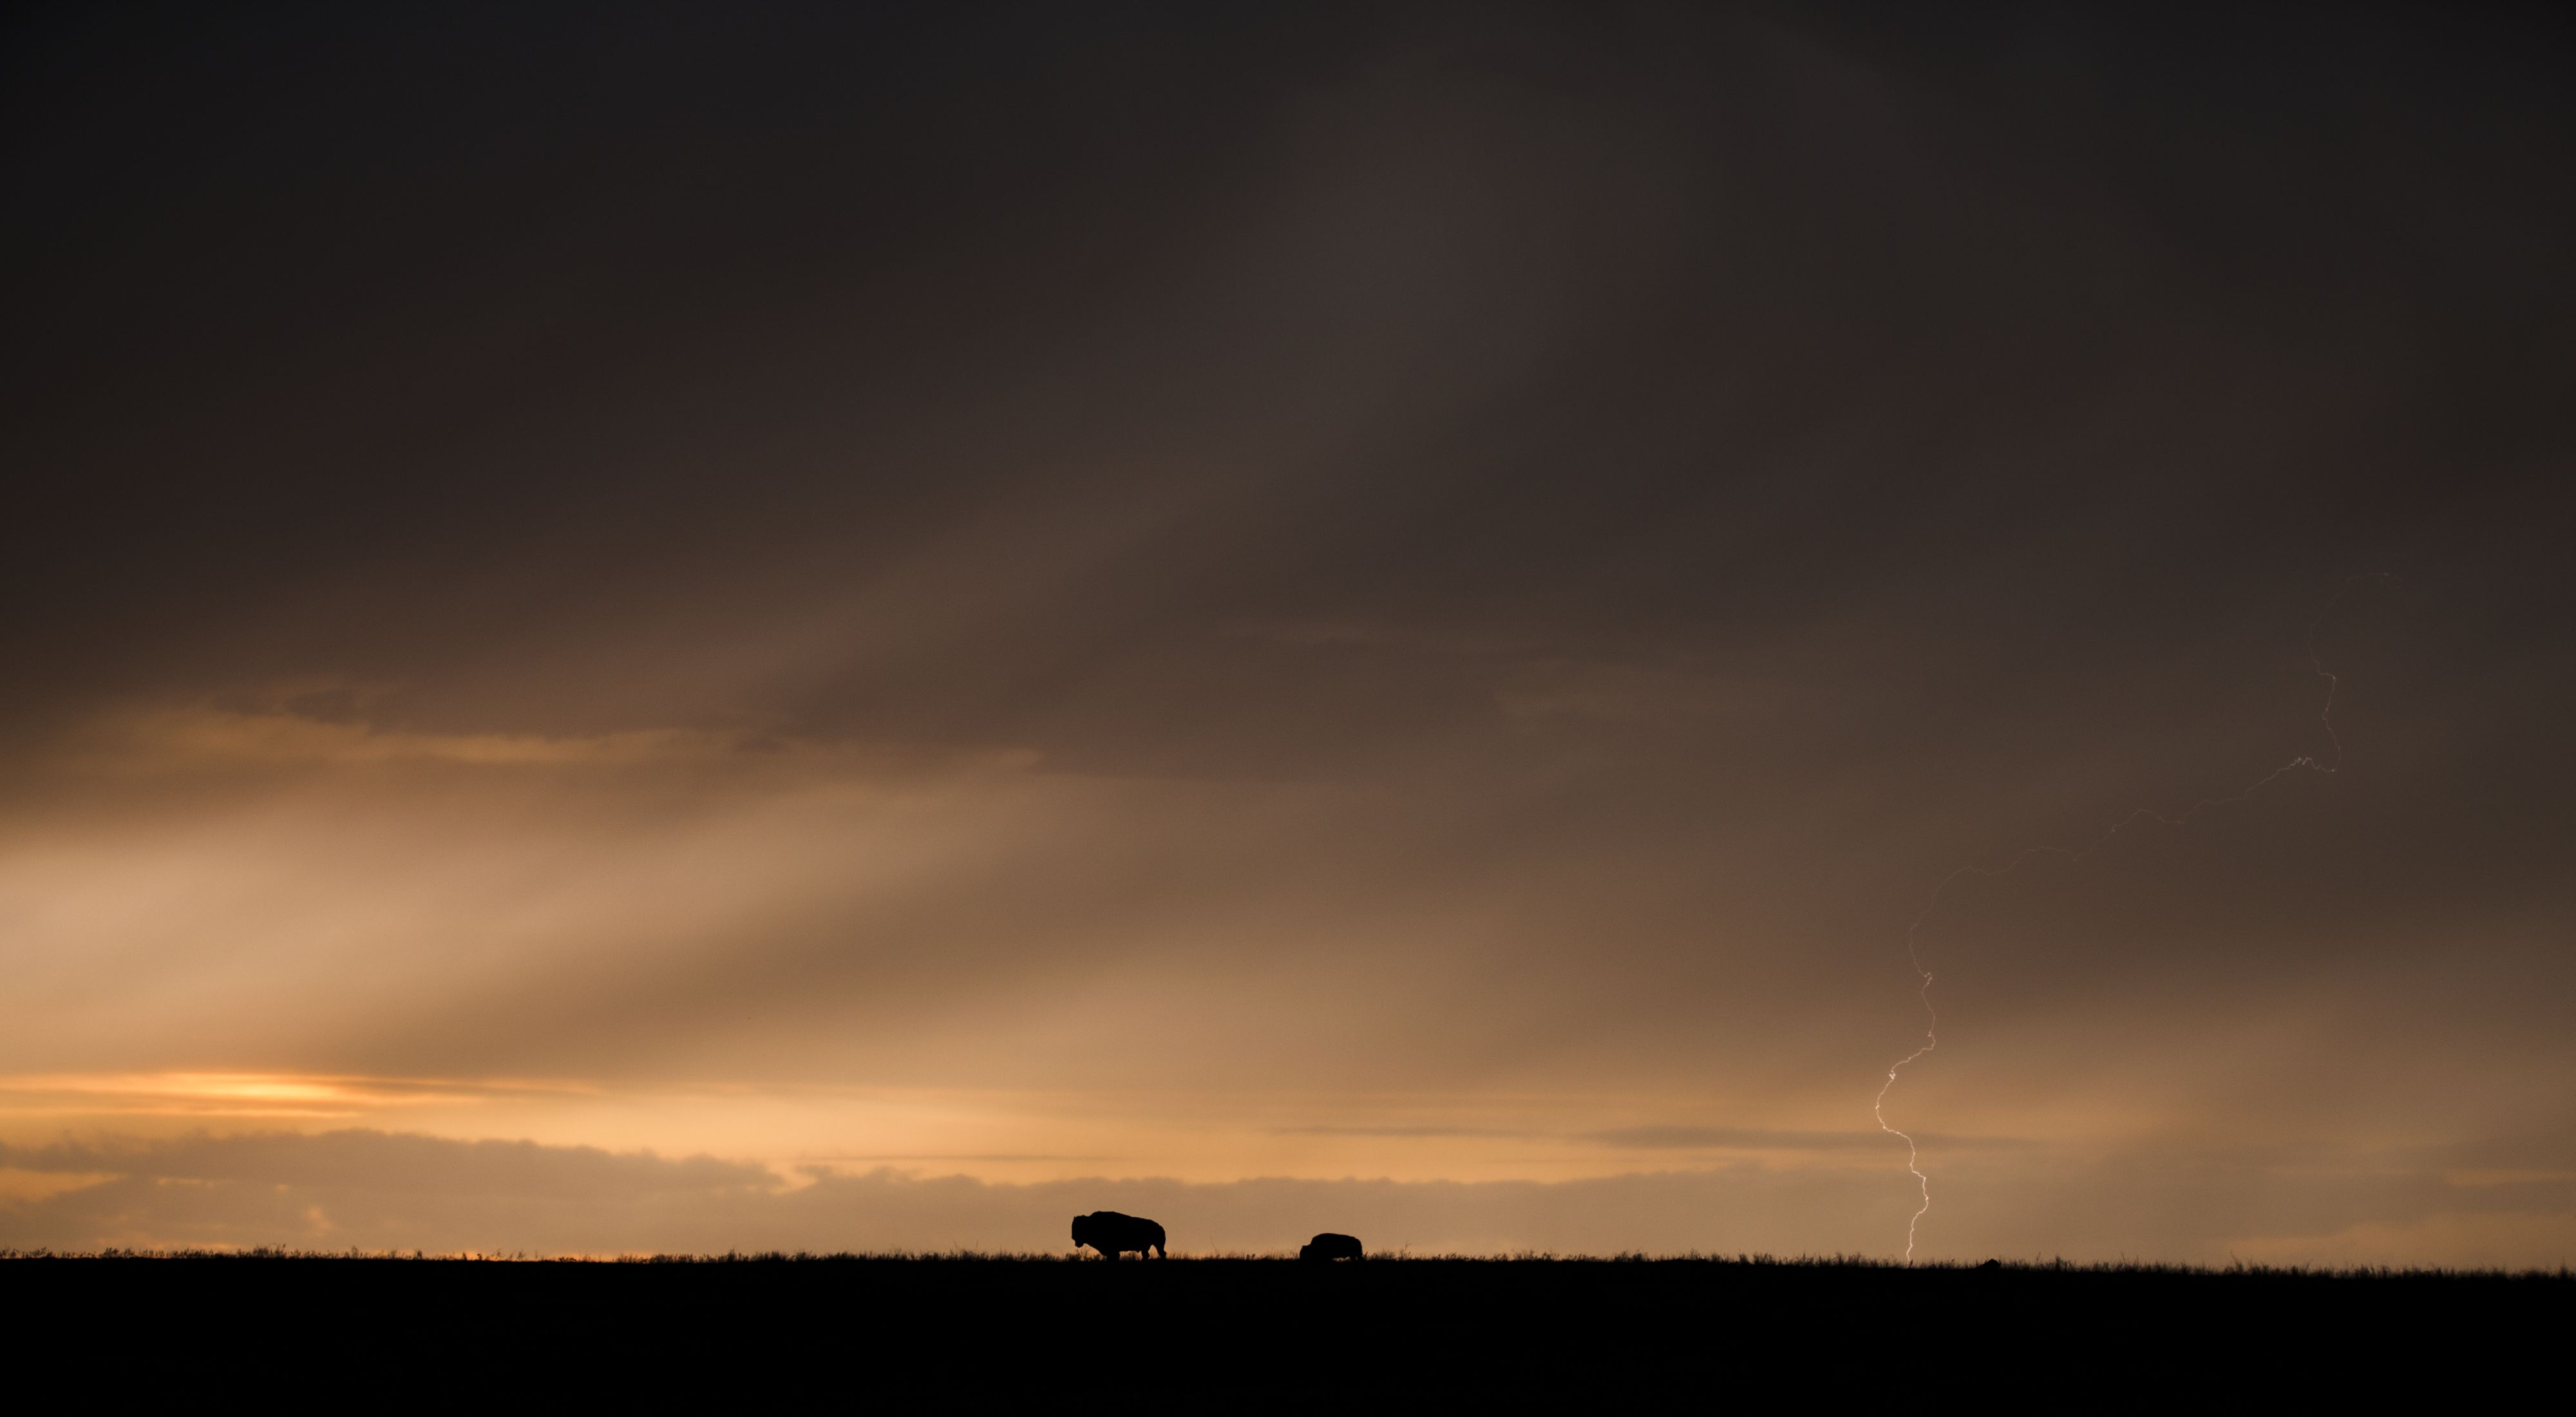 Bison in the distance silhouetted against a dark sky.